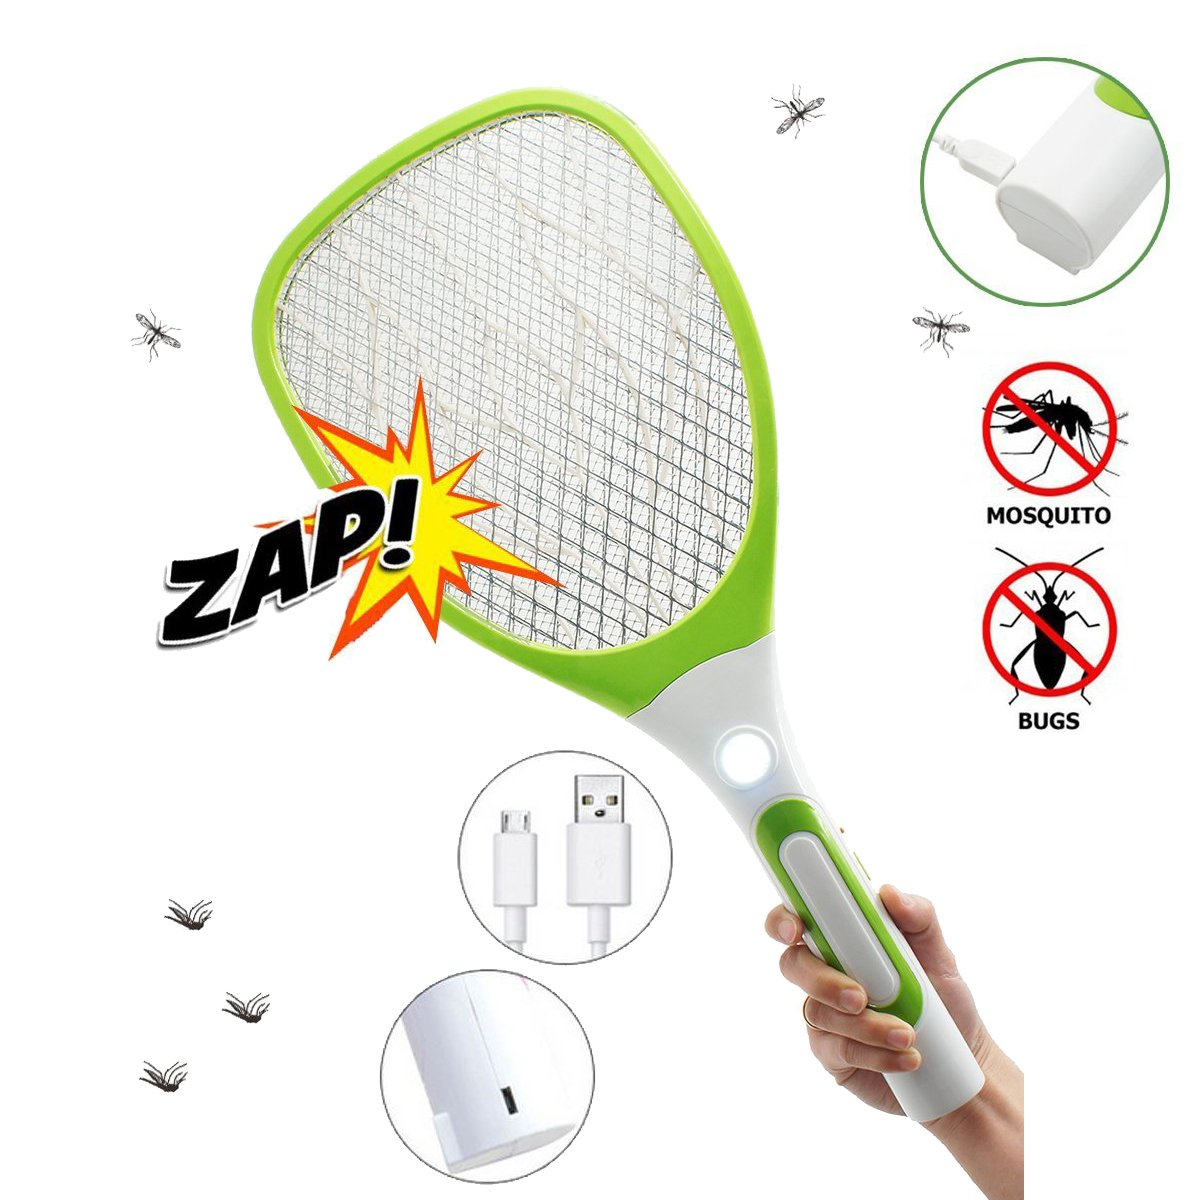 USB Rechargeable Electric Fly Swatter Bug Zapper Mosquito Killer Racket with LED Flashlight (White Green) by Qiyuxow (Image #1)